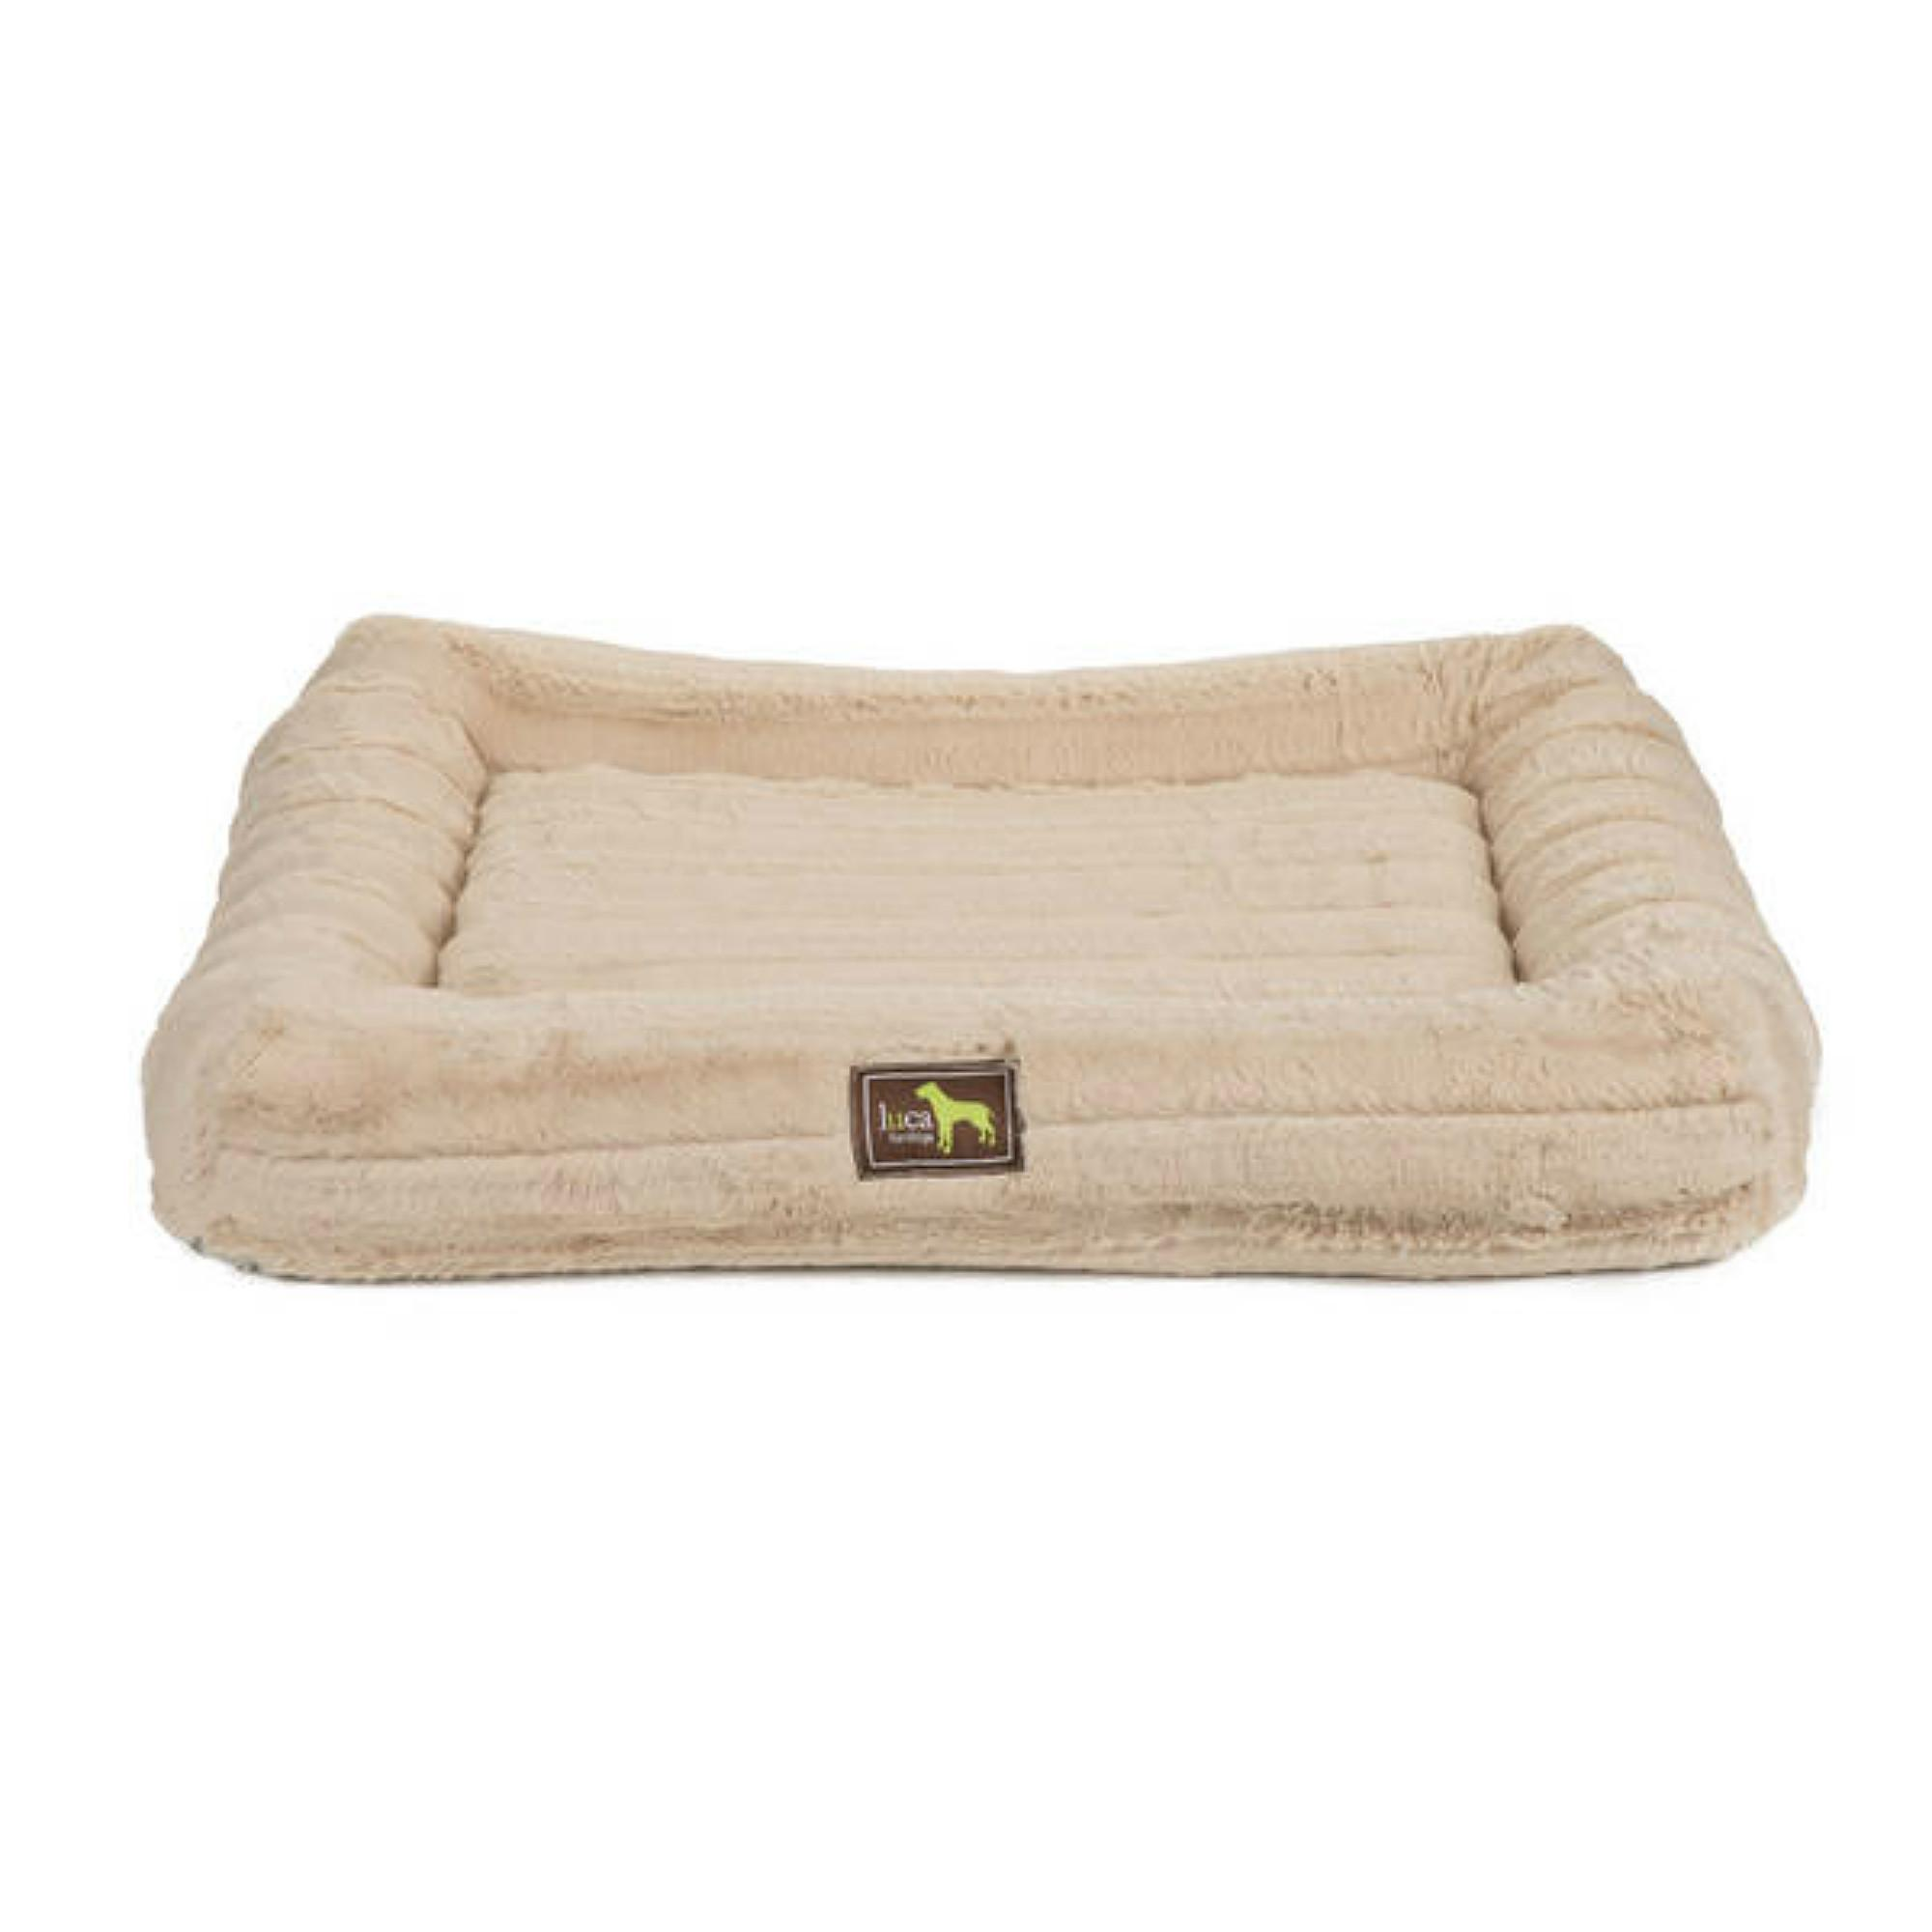 Luca Crate Cuddler Chinchilla Dog Bed - Camel